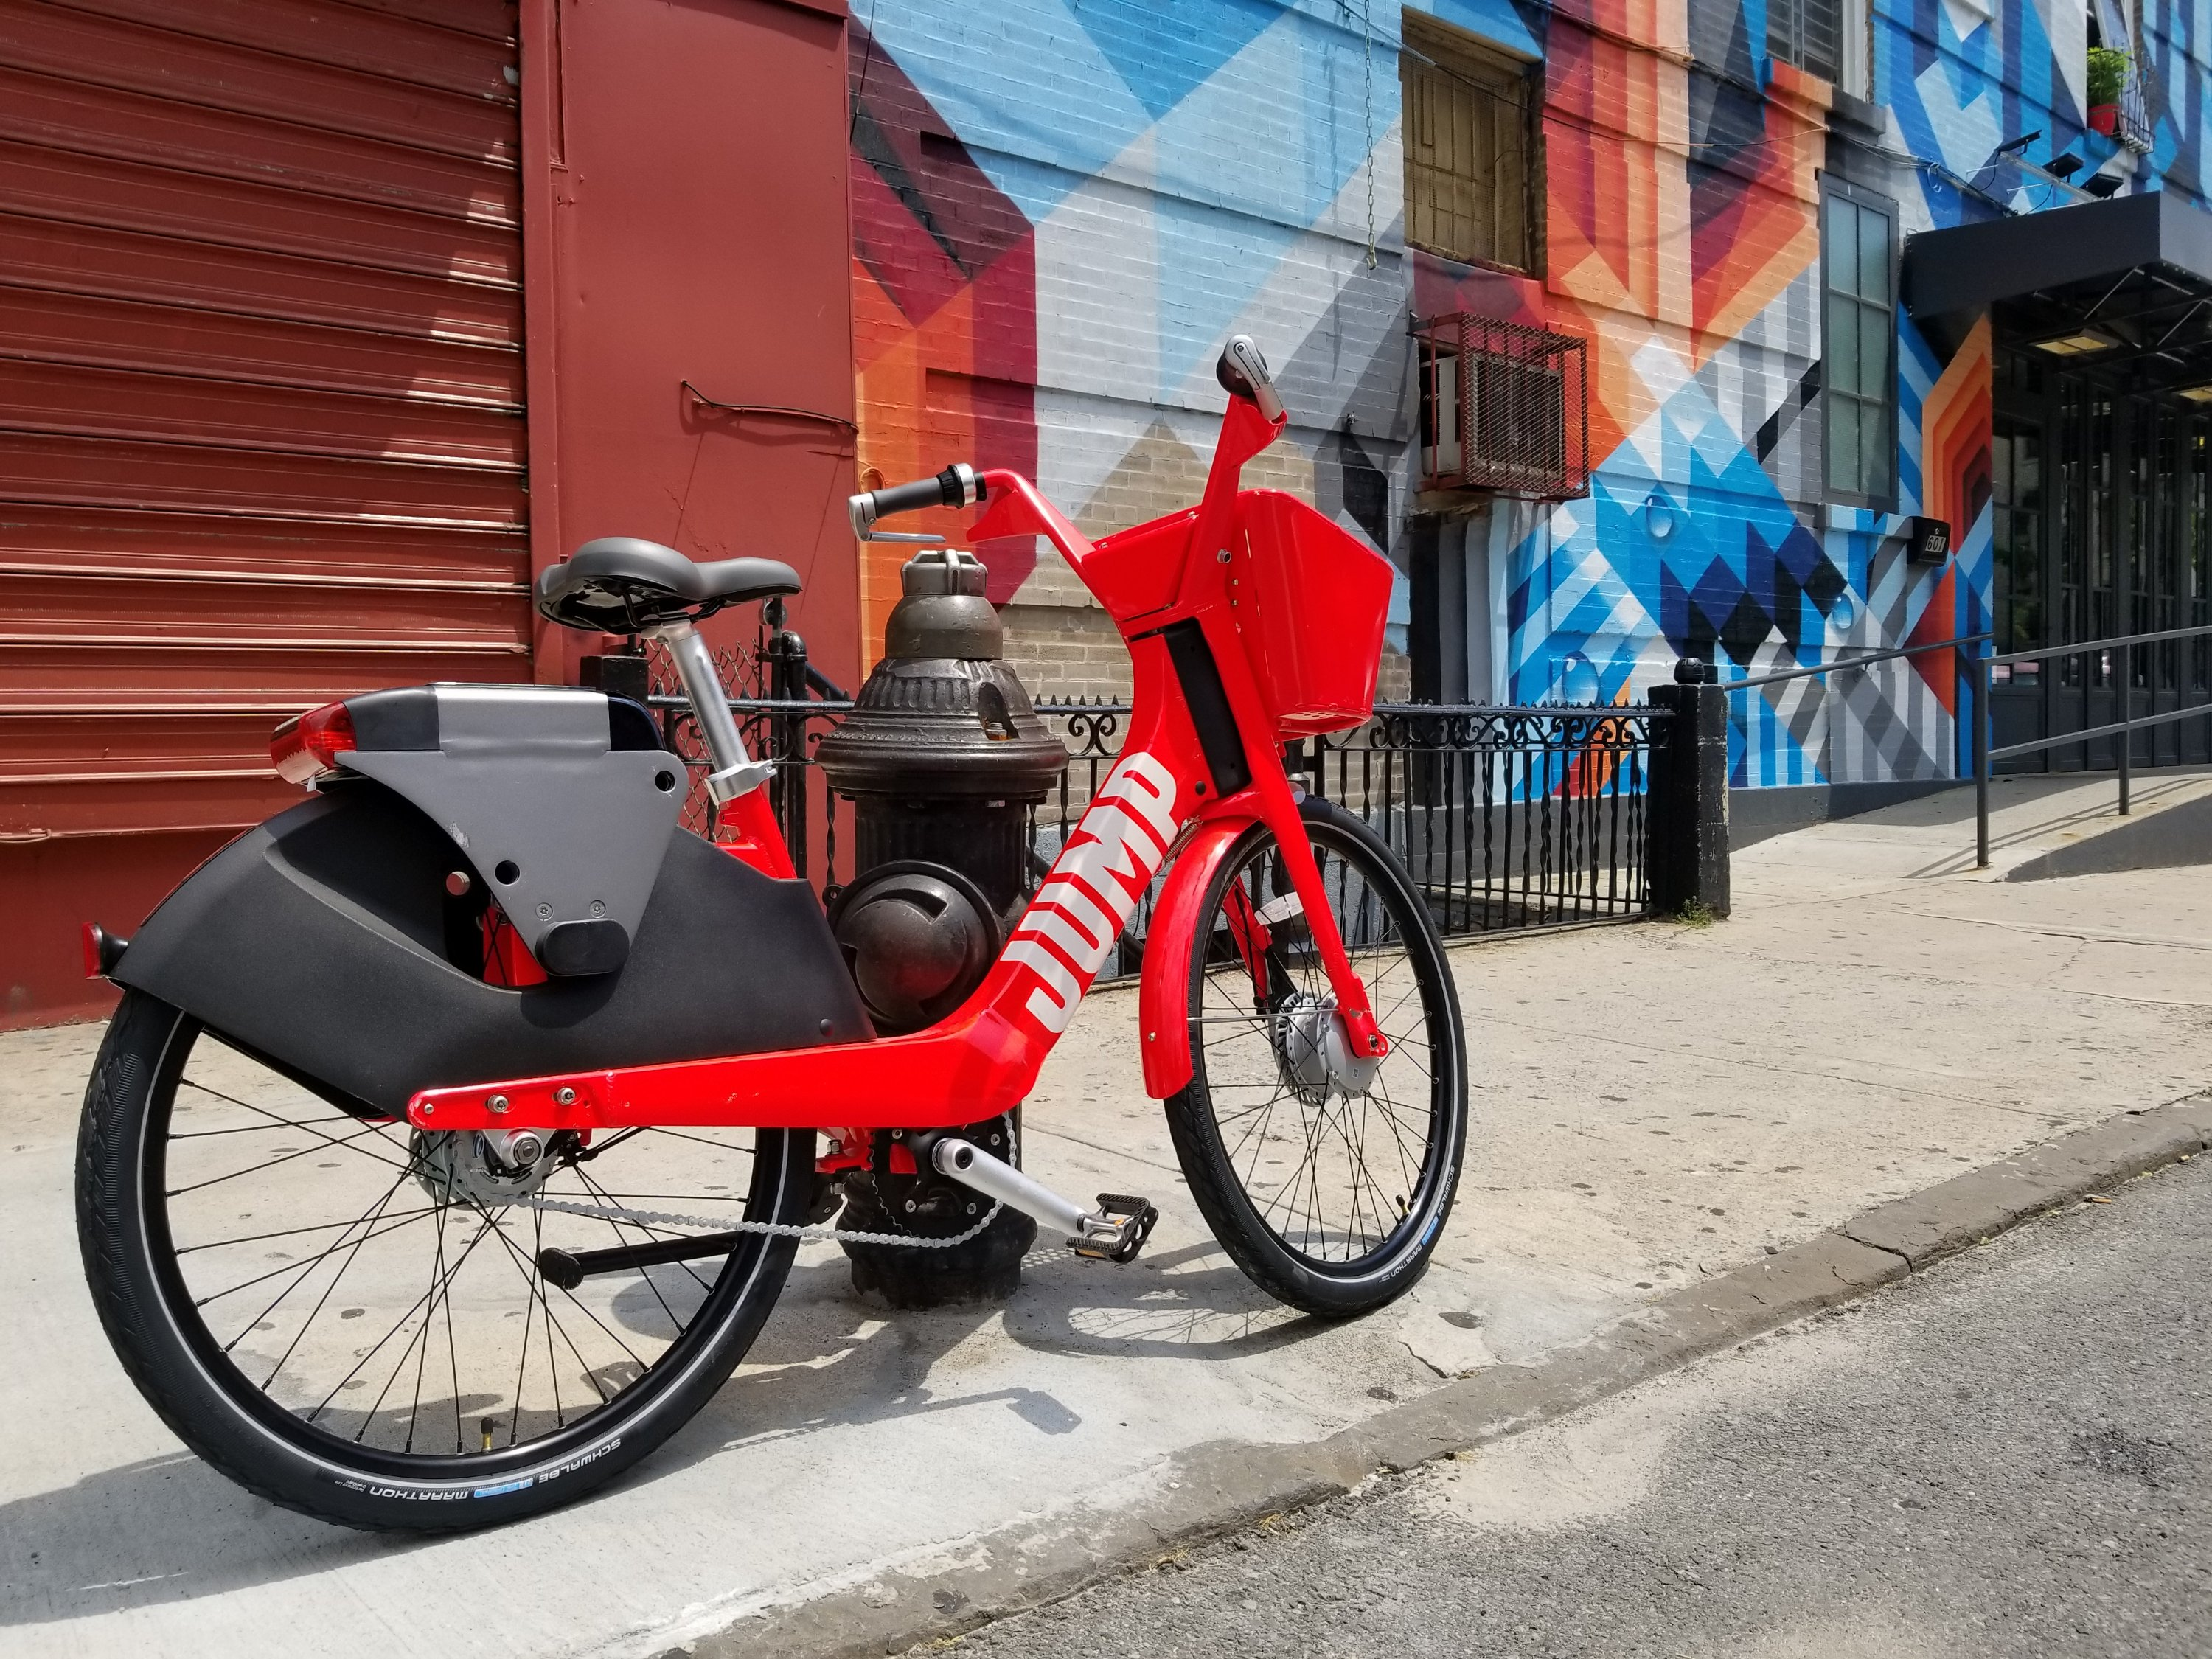 Citi Bike is FINALLY Coming to The Bronx